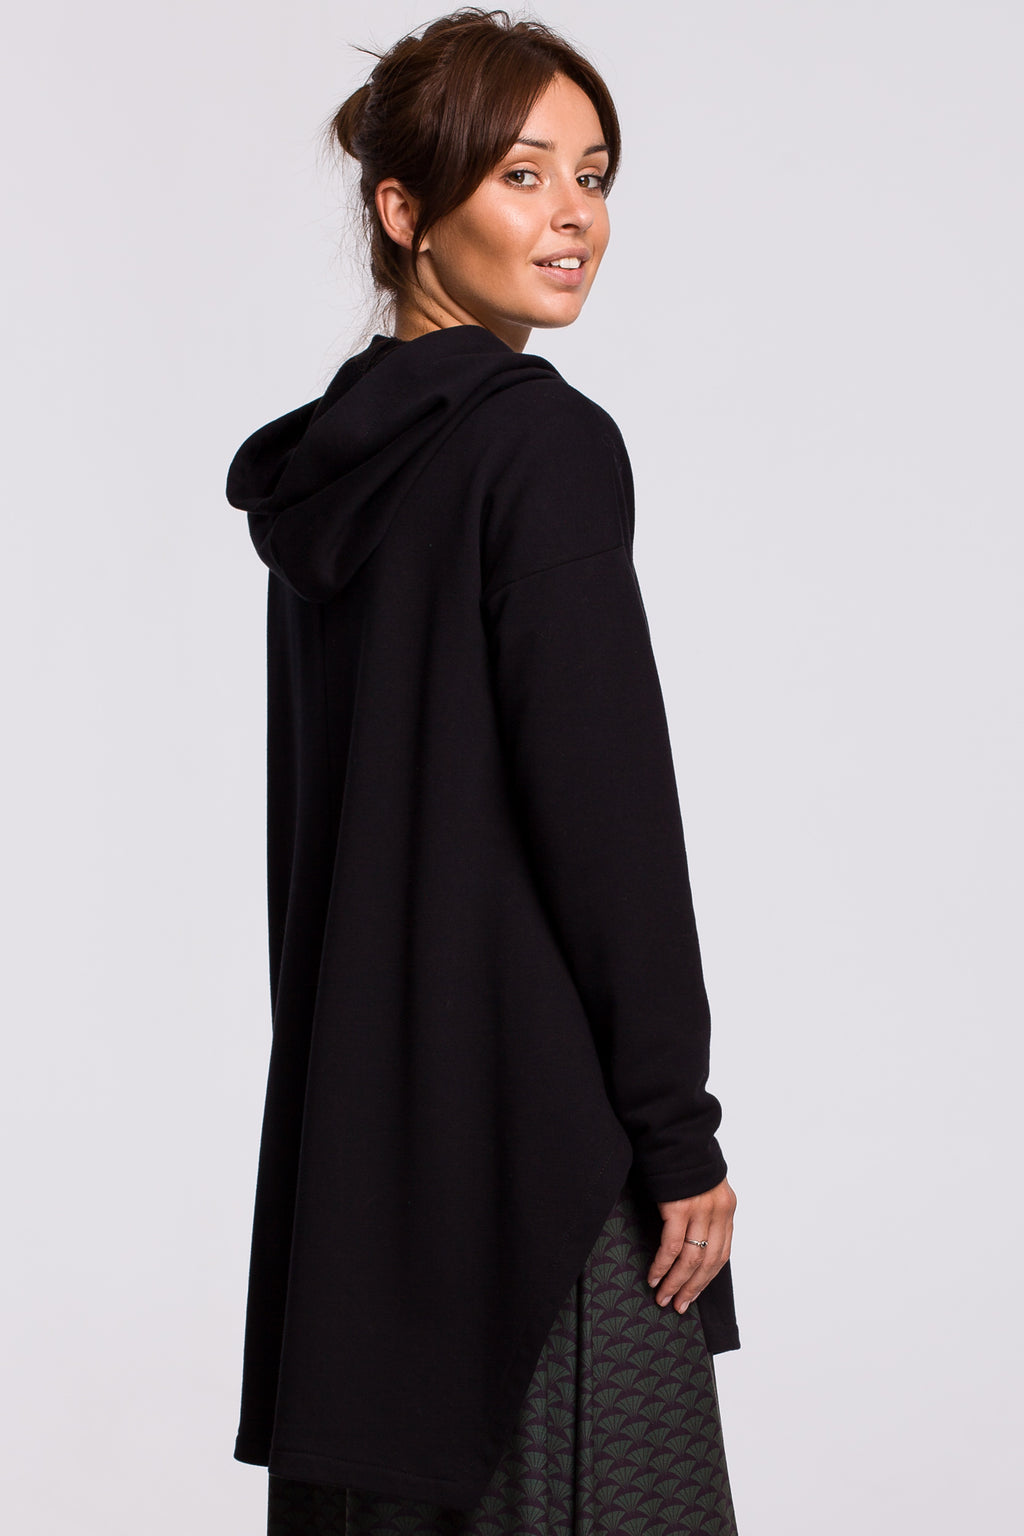 Black Long Hooded Sweatshirt With A Slit - So Chic Boutique